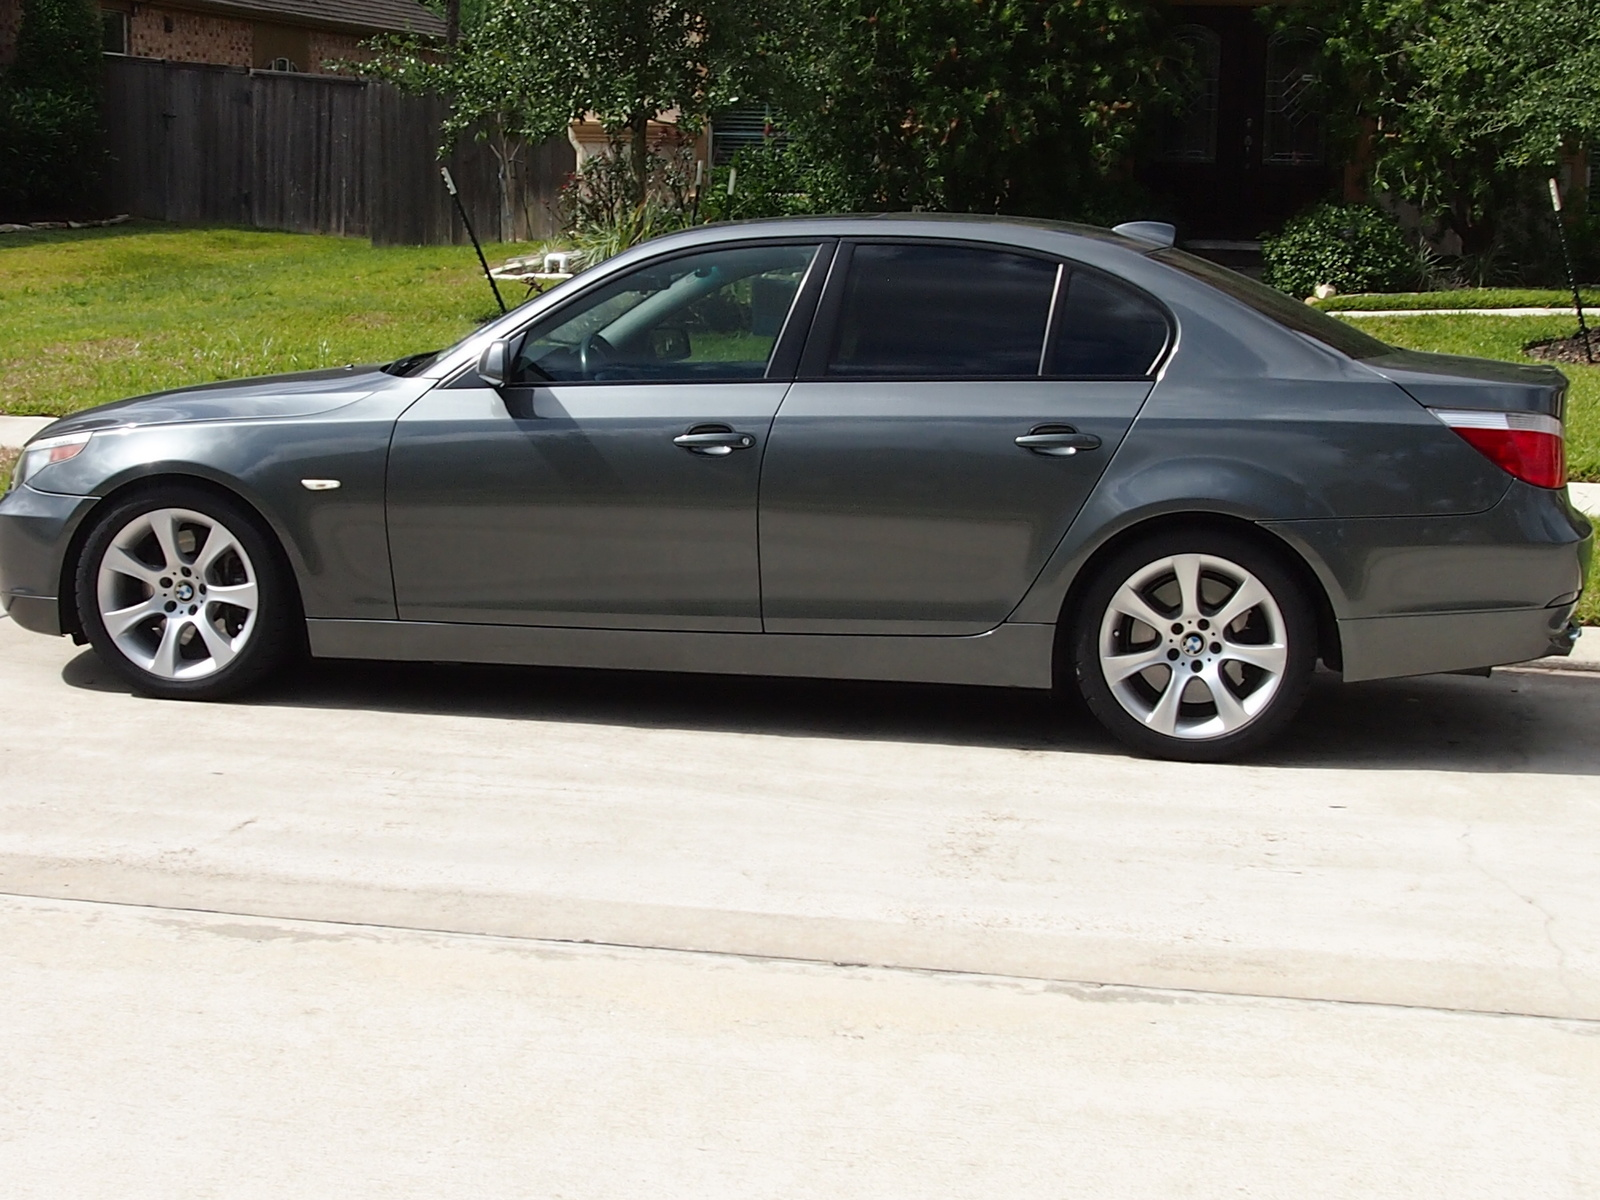 BMW 5 series 525i 2005 photo - 9